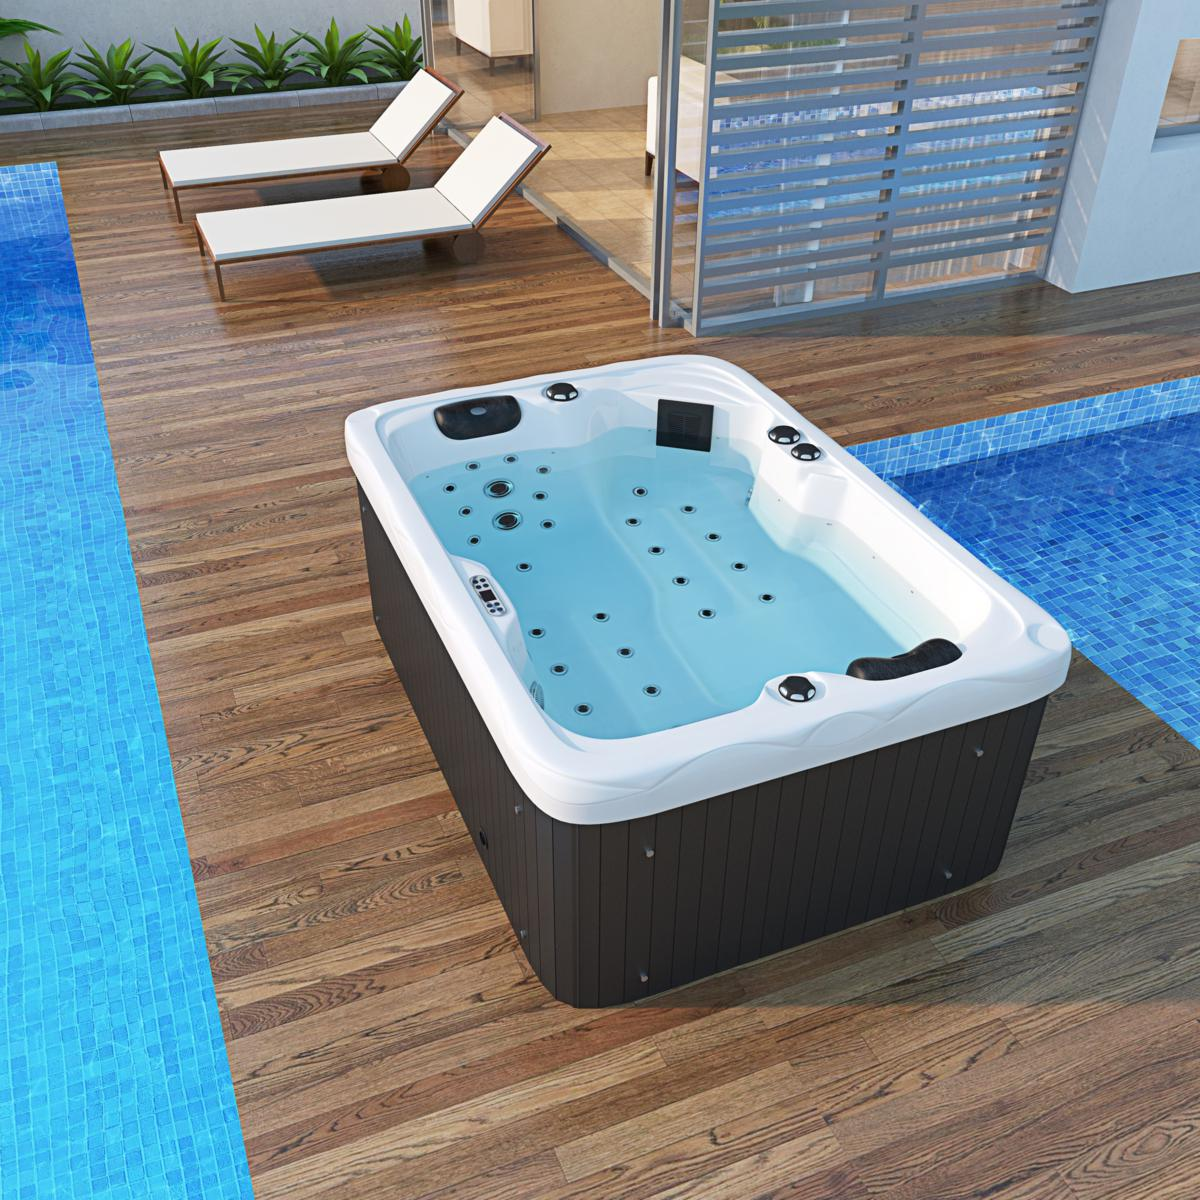 Outdoor Whirlpool Cheap Outdoor Whirlpool Spa Luzern 195x135 Cm With 41 Massage Jets Heating Ozone Disinfection For 2 Persons